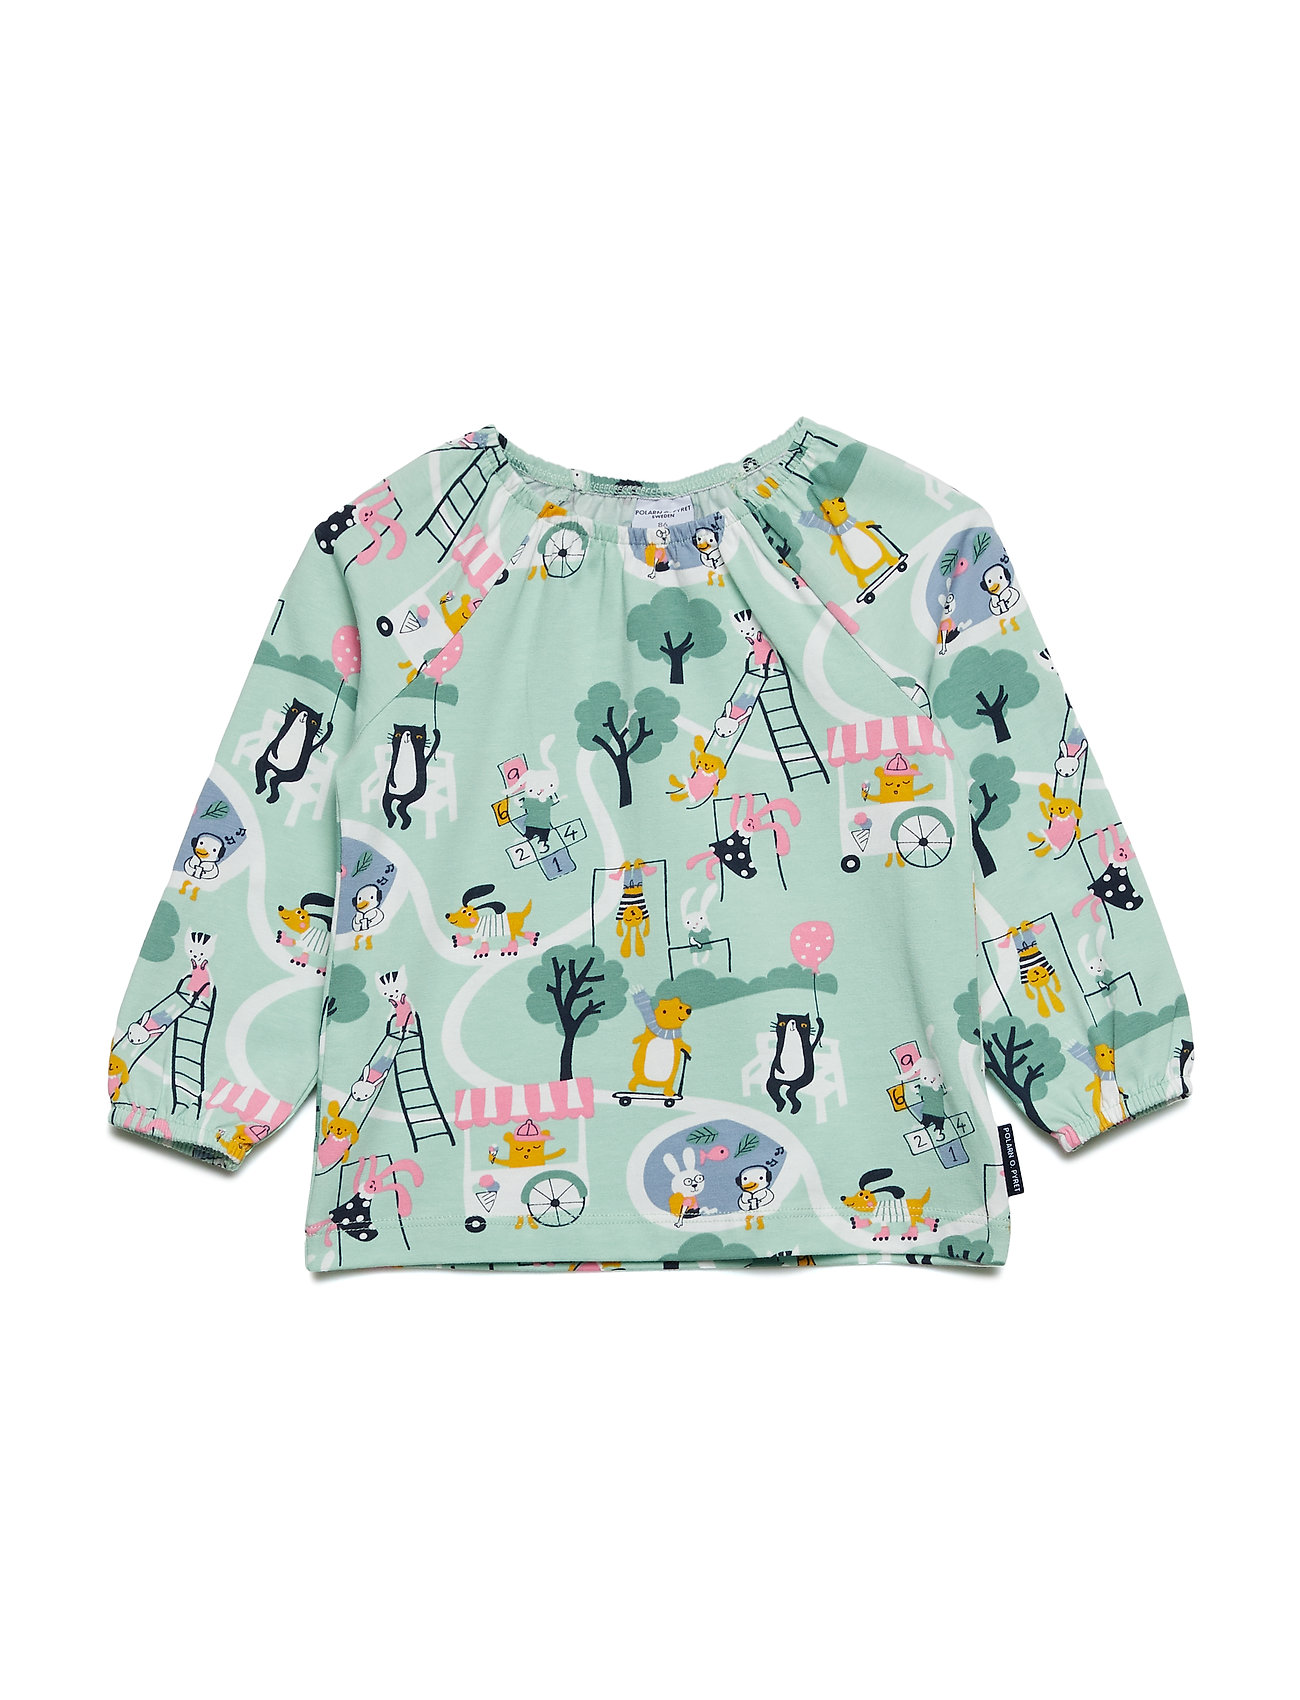 Polarn O. Pyret Top Long Sleeve with print Preschool